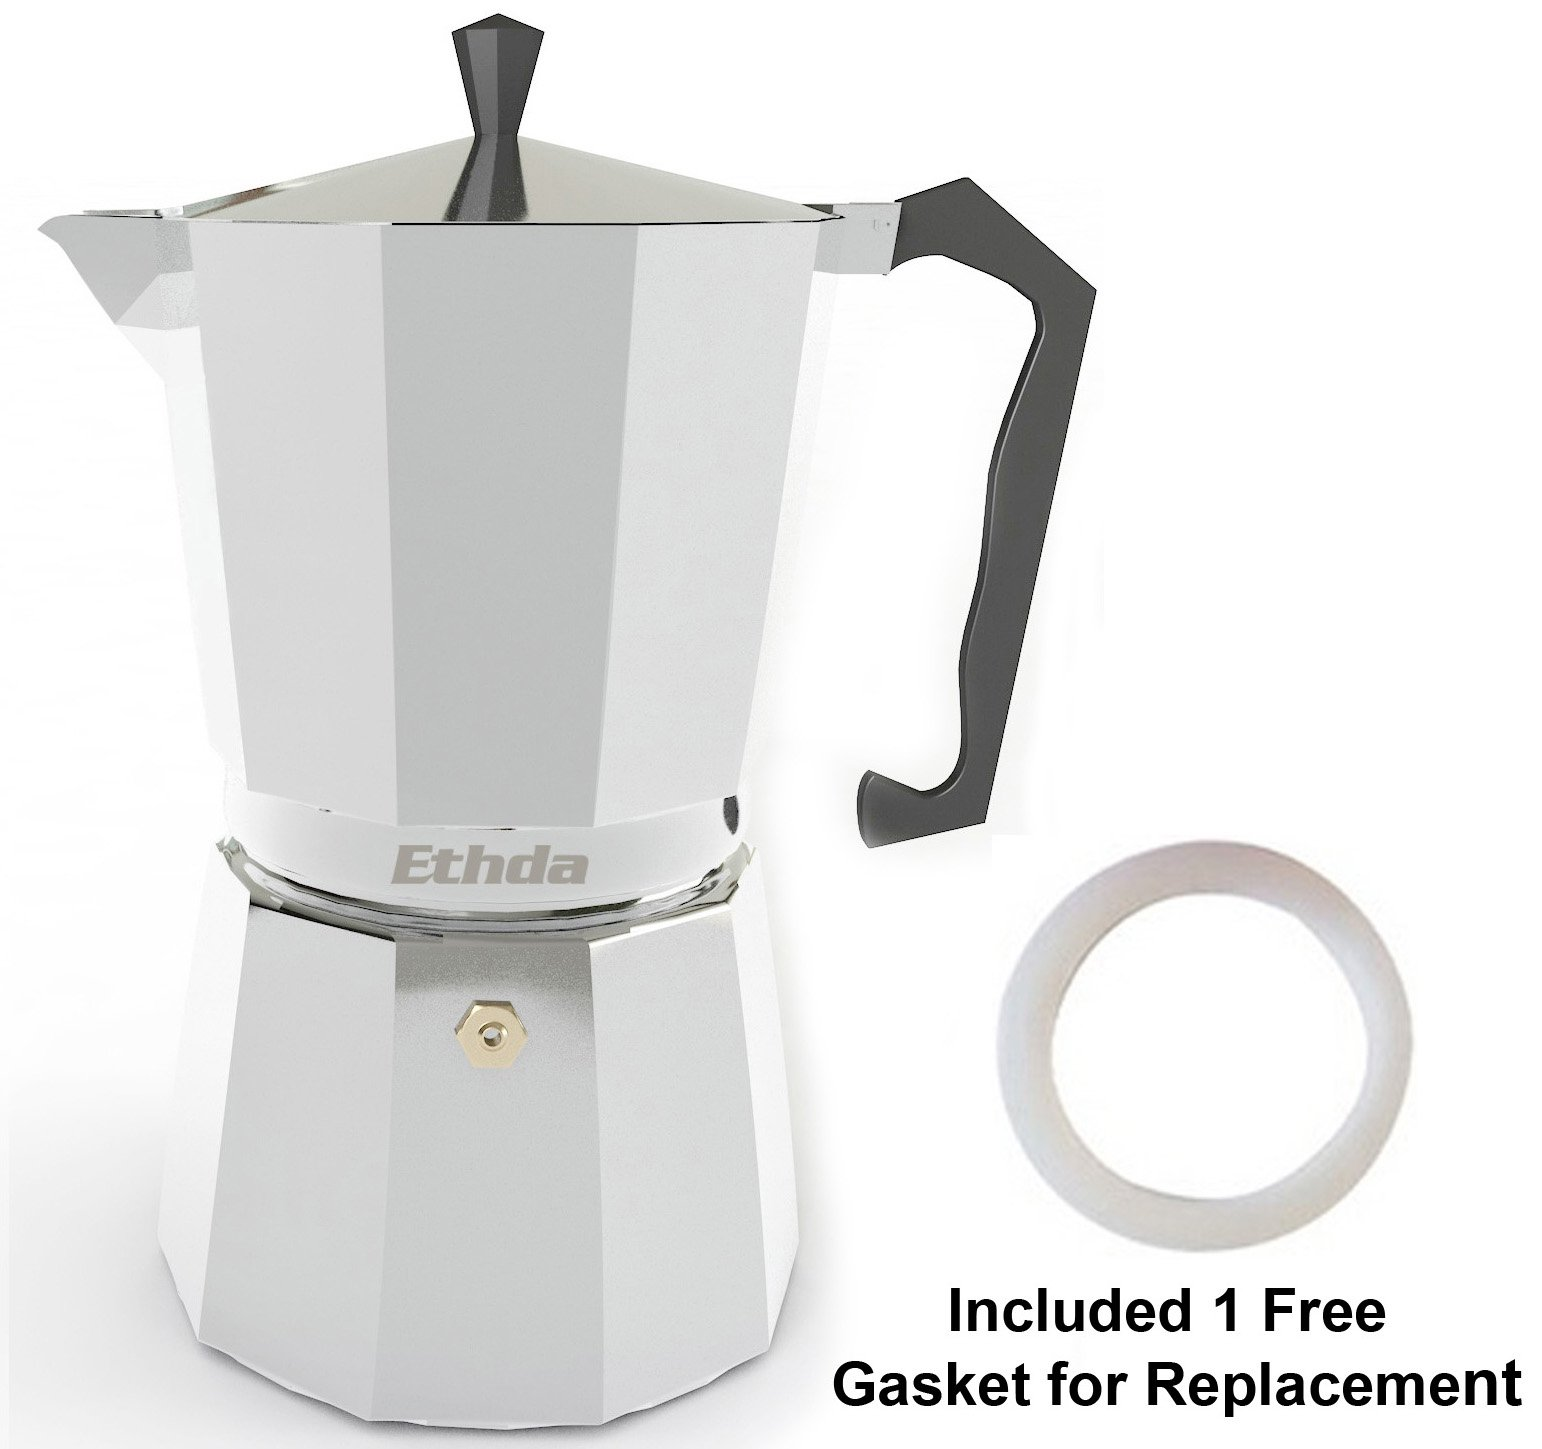 ETHDA Stovetop Espresso Maker, Moka Pot, Coffee Maker for Italian Cappuccino, Latte, Silver, Aluminum, Extra Gasket Included, Safety Valve, Strong Handle, On the Go Camping Pot (3 Cup)